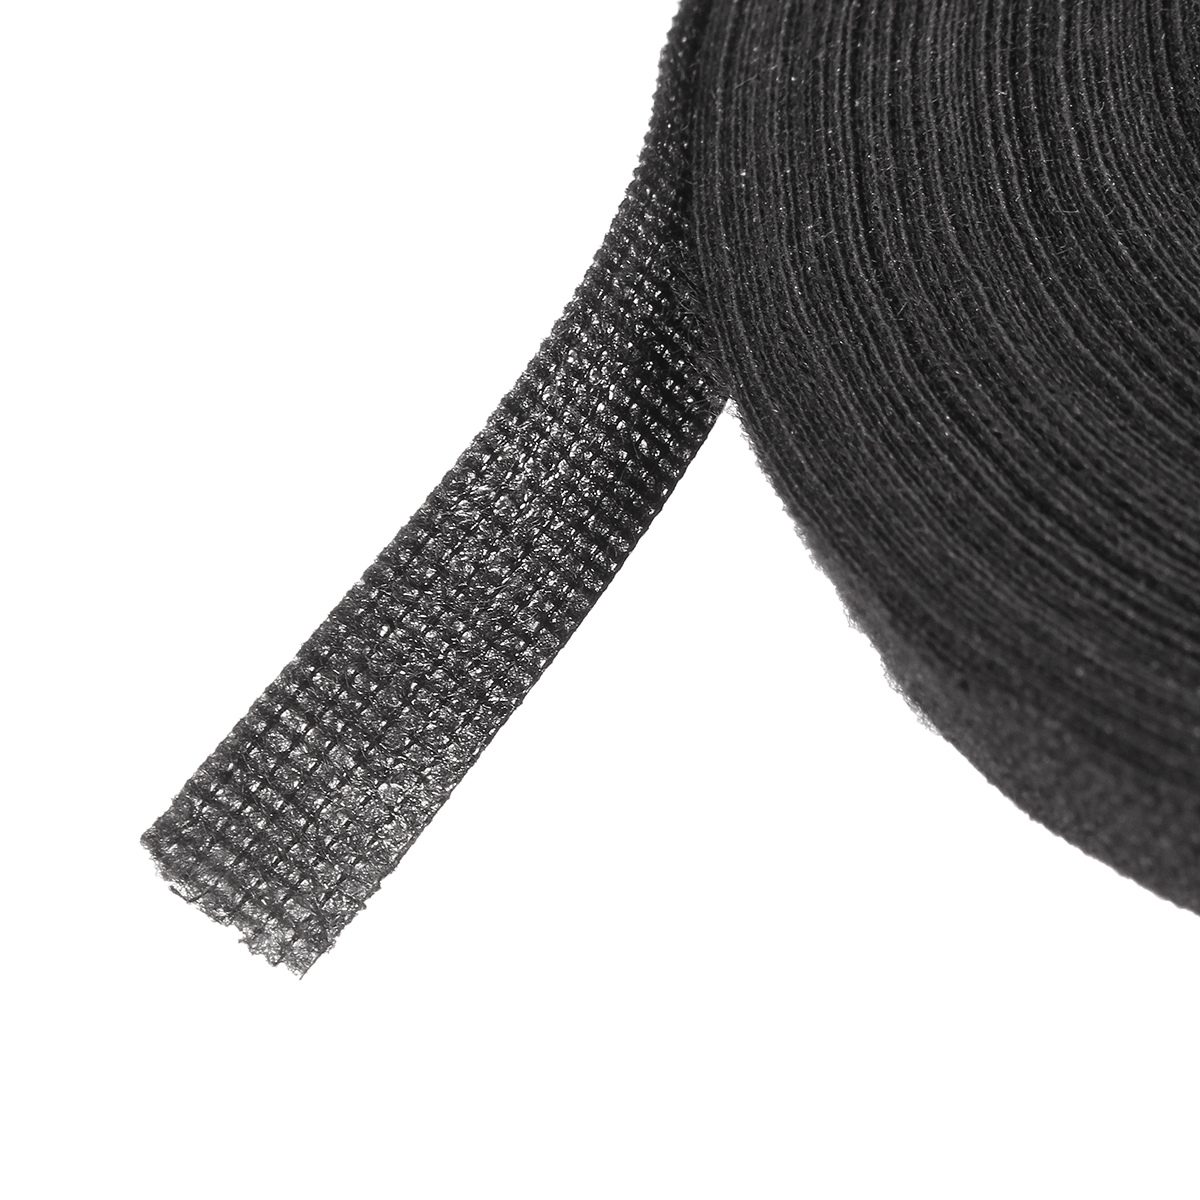 Mtgather Natural Rubber Car Wiring Loom Harness Adhesive Cloth Sleeve Fabric Black Tape Cable 9mm X 25m In Sealers From Home Improvement On